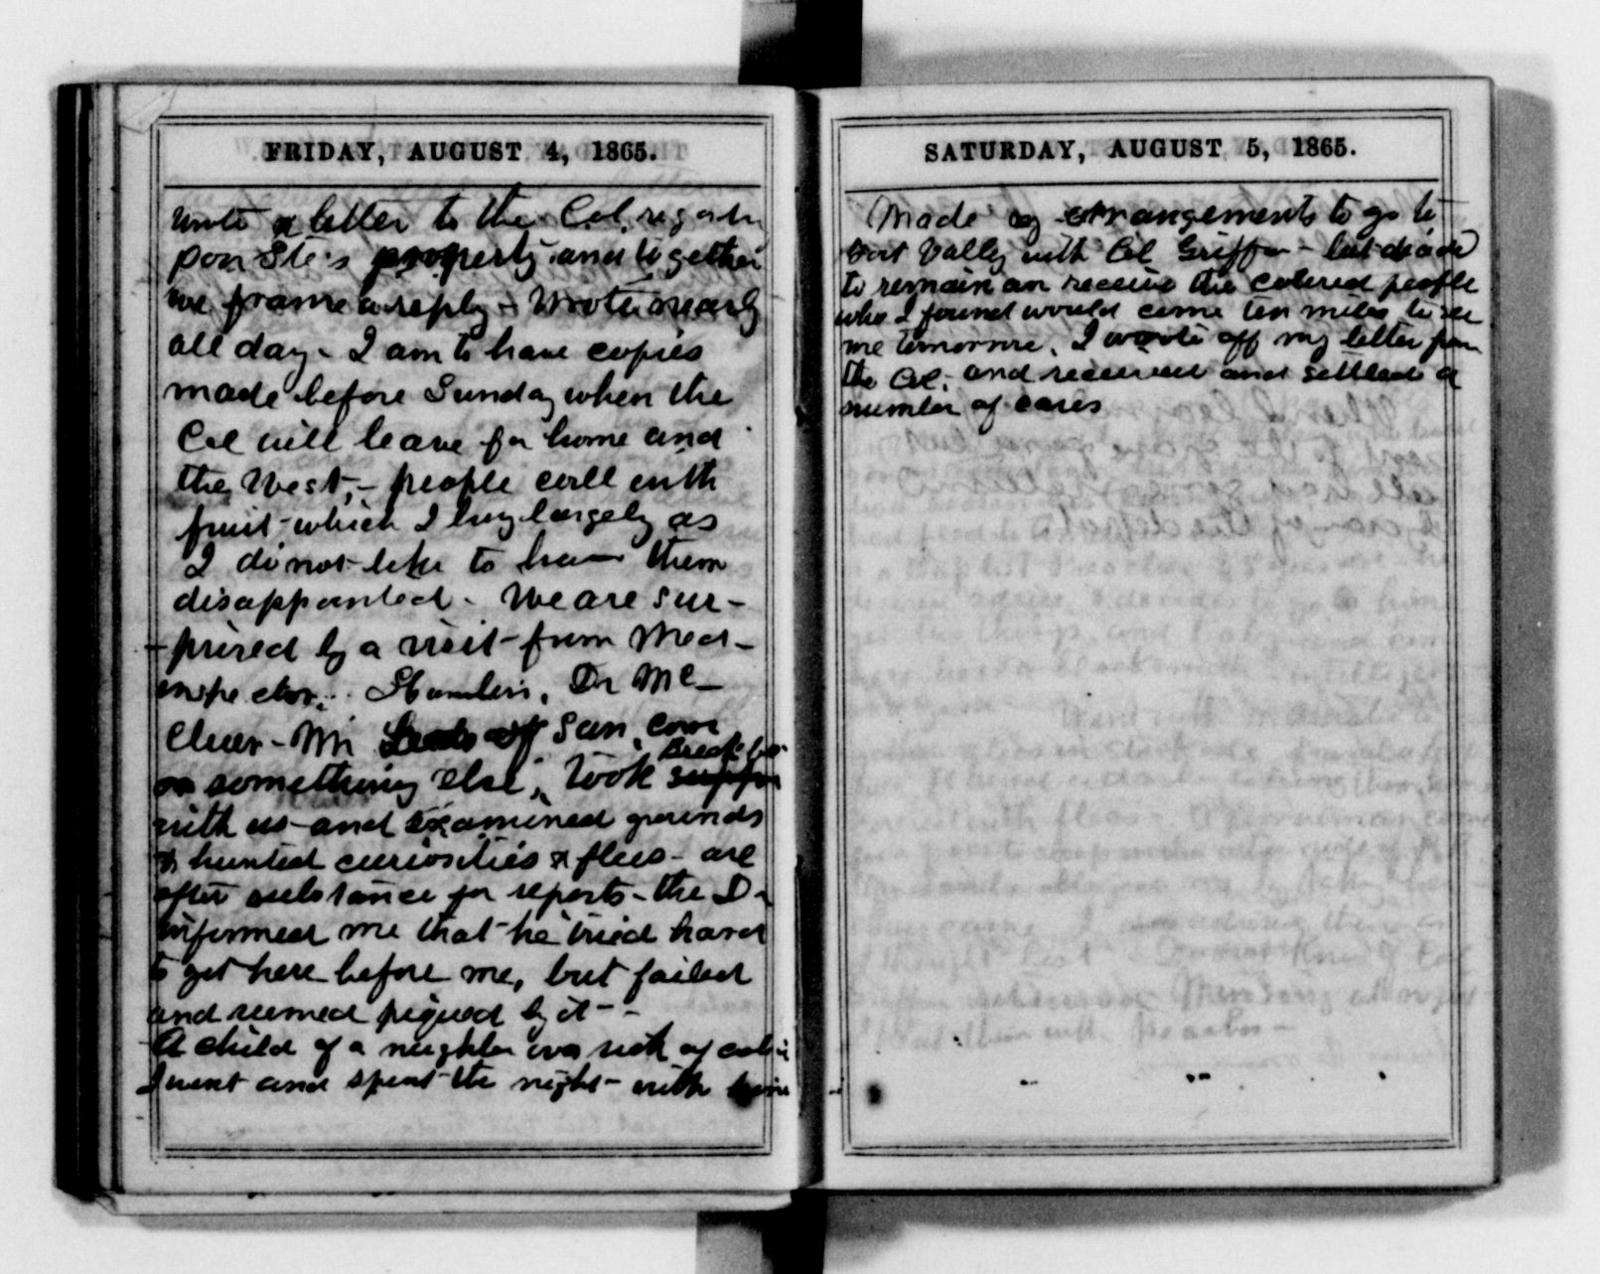 Clara Barton Papers: Diaries and Journals: 1865, Jan.-Dec.